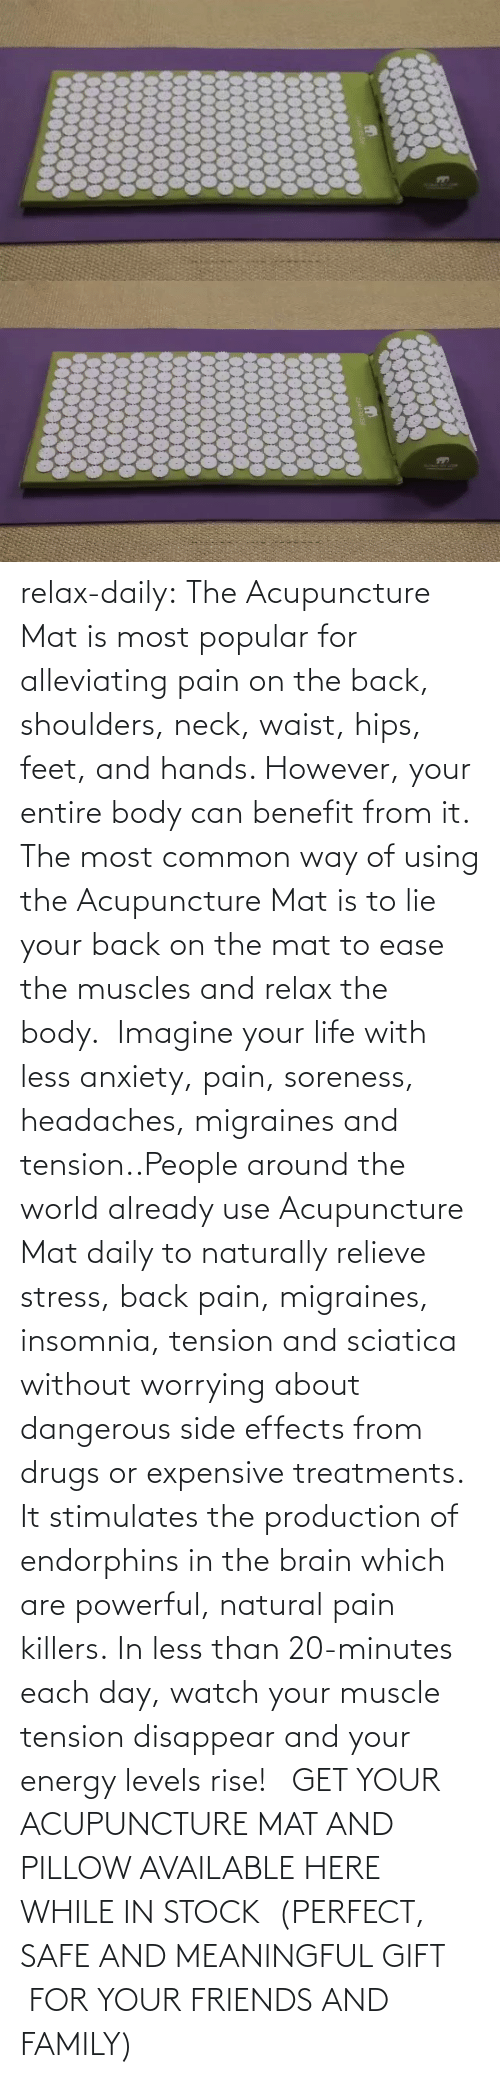 muscles: relax-daily:  The Acupuncture Mat is most popular for alleviating pain on the back, shoulders, neck, waist, hips, feet, and hands. However, your entire body can benefit from it. The most common way of using the Acupuncture Mat is to lie your back on the mat to ease the muscles and relax the body.  Imagine your life with less anxiety, pain, soreness, headaches, migraines and tension..People around the world already use Acupuncture Mat daily to naturally relieve stress, back pain, migraines, insomnia, tension and sciatica without worrying about dangerous side effects from drugs or expensive treatments. It stimulates the production of endorphins in the brain which are powerful, natural pain killers. In less than 20-minutes each day, watch your muscle tension disappear and your energy levels rise!   GET YOUR ACUPUNCTURE MAT AND PILLOW AVAILABLE HERE WHILE IN STOCK  (PERFECT, SAFE AND MEANINGFUL GIFT  FOR YOUR FRIENDS AND FAMILY)